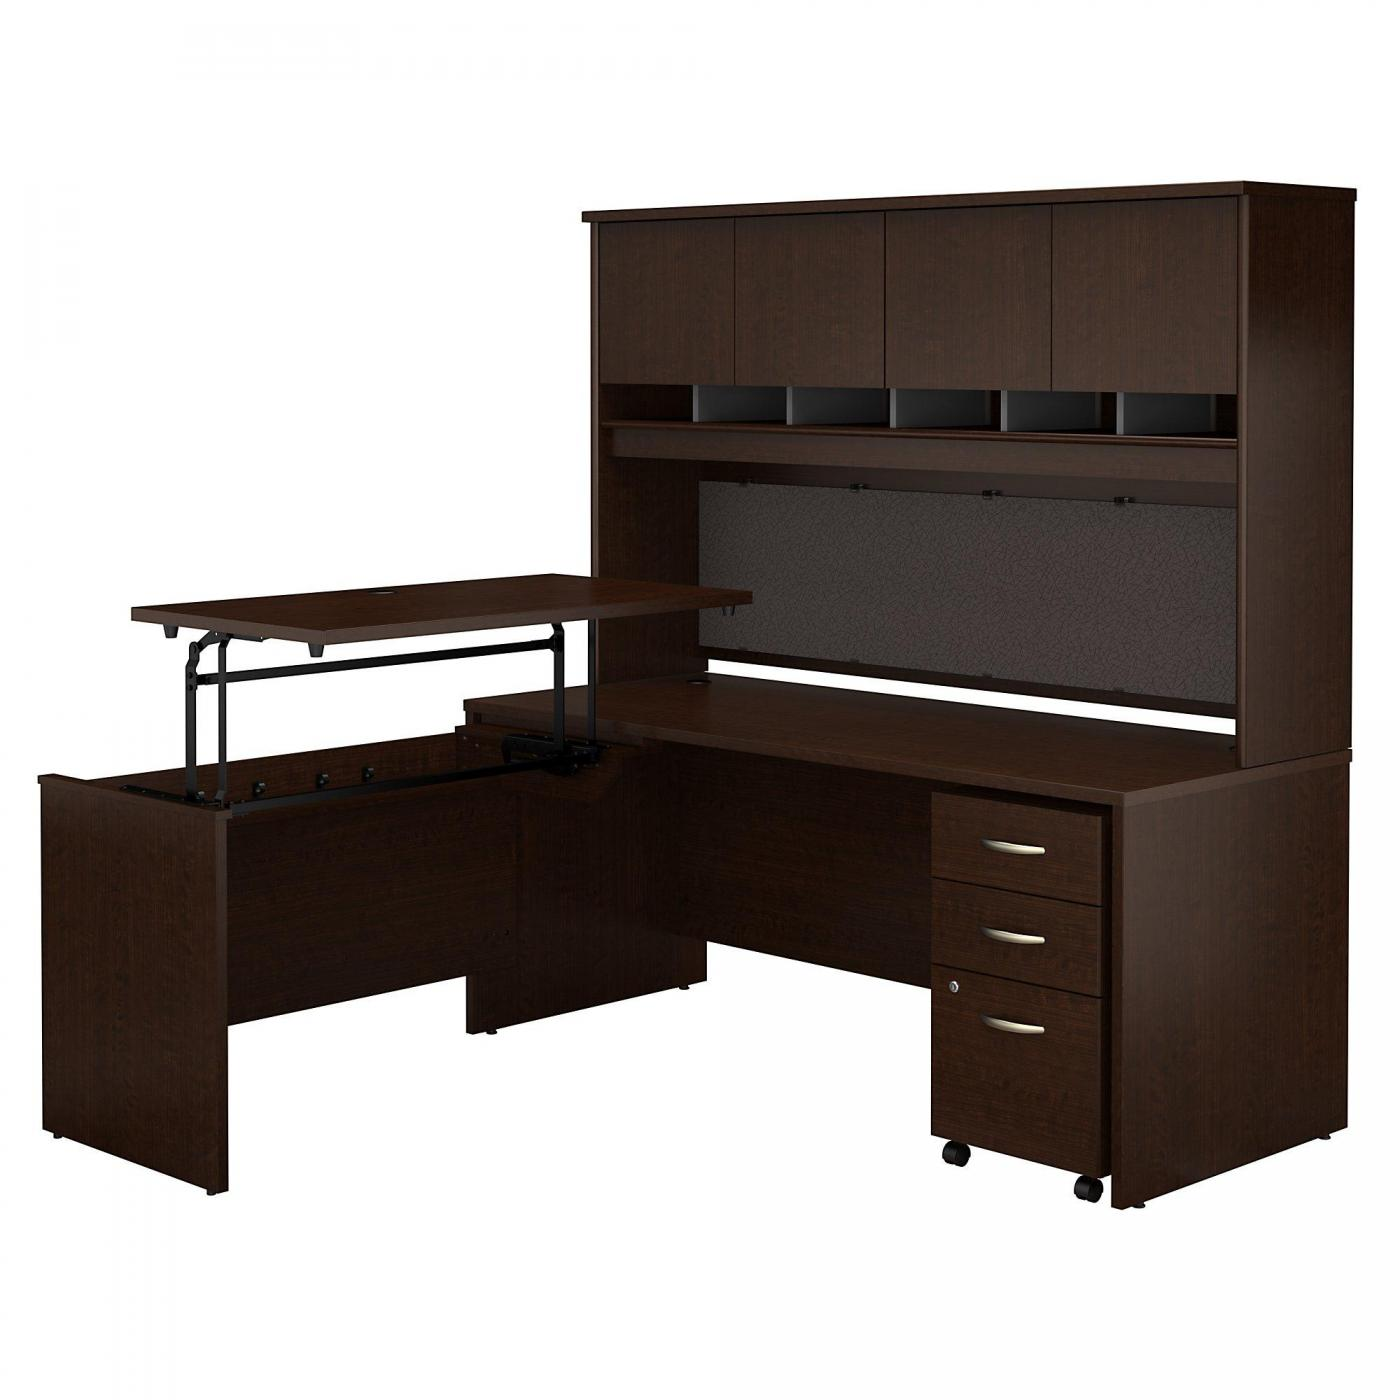 </b></font><b>BUSH BUSINESS FURNITURE SERIES C 72W X 30D 3 POSITION SIT TO STAND L SHAPED DESK WITH HUTCH AND MOBILE FILE CABINET. FREE SHIPPING. VIDEO:</b></font>  VIDEO BELOW. <p>RATING:&#11088;&#11088;&#11088;&#11088;&#11088;</b></font></b>